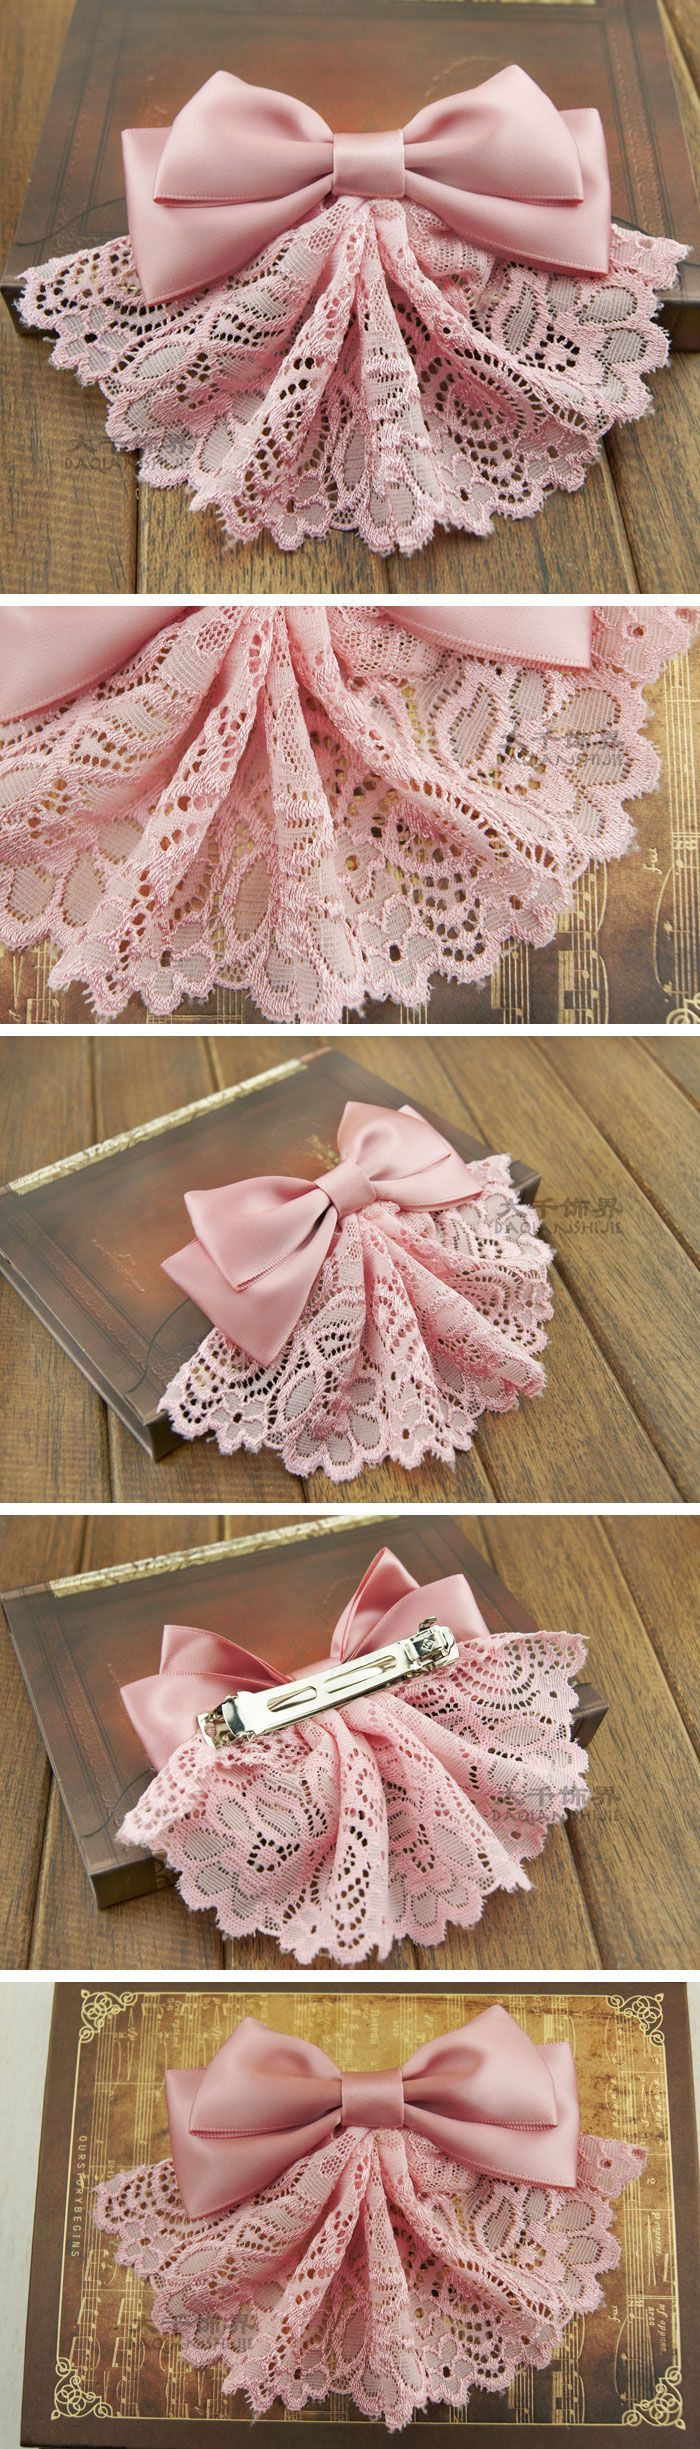 Lace bow hair accessories is artistic inspiration for us. Get extra photograph about House Decor and DIY & Crafts associated with by taking a look at photographs gallery on the backside of this web page. We're need to say thanks in case you wish to share this submit to a …